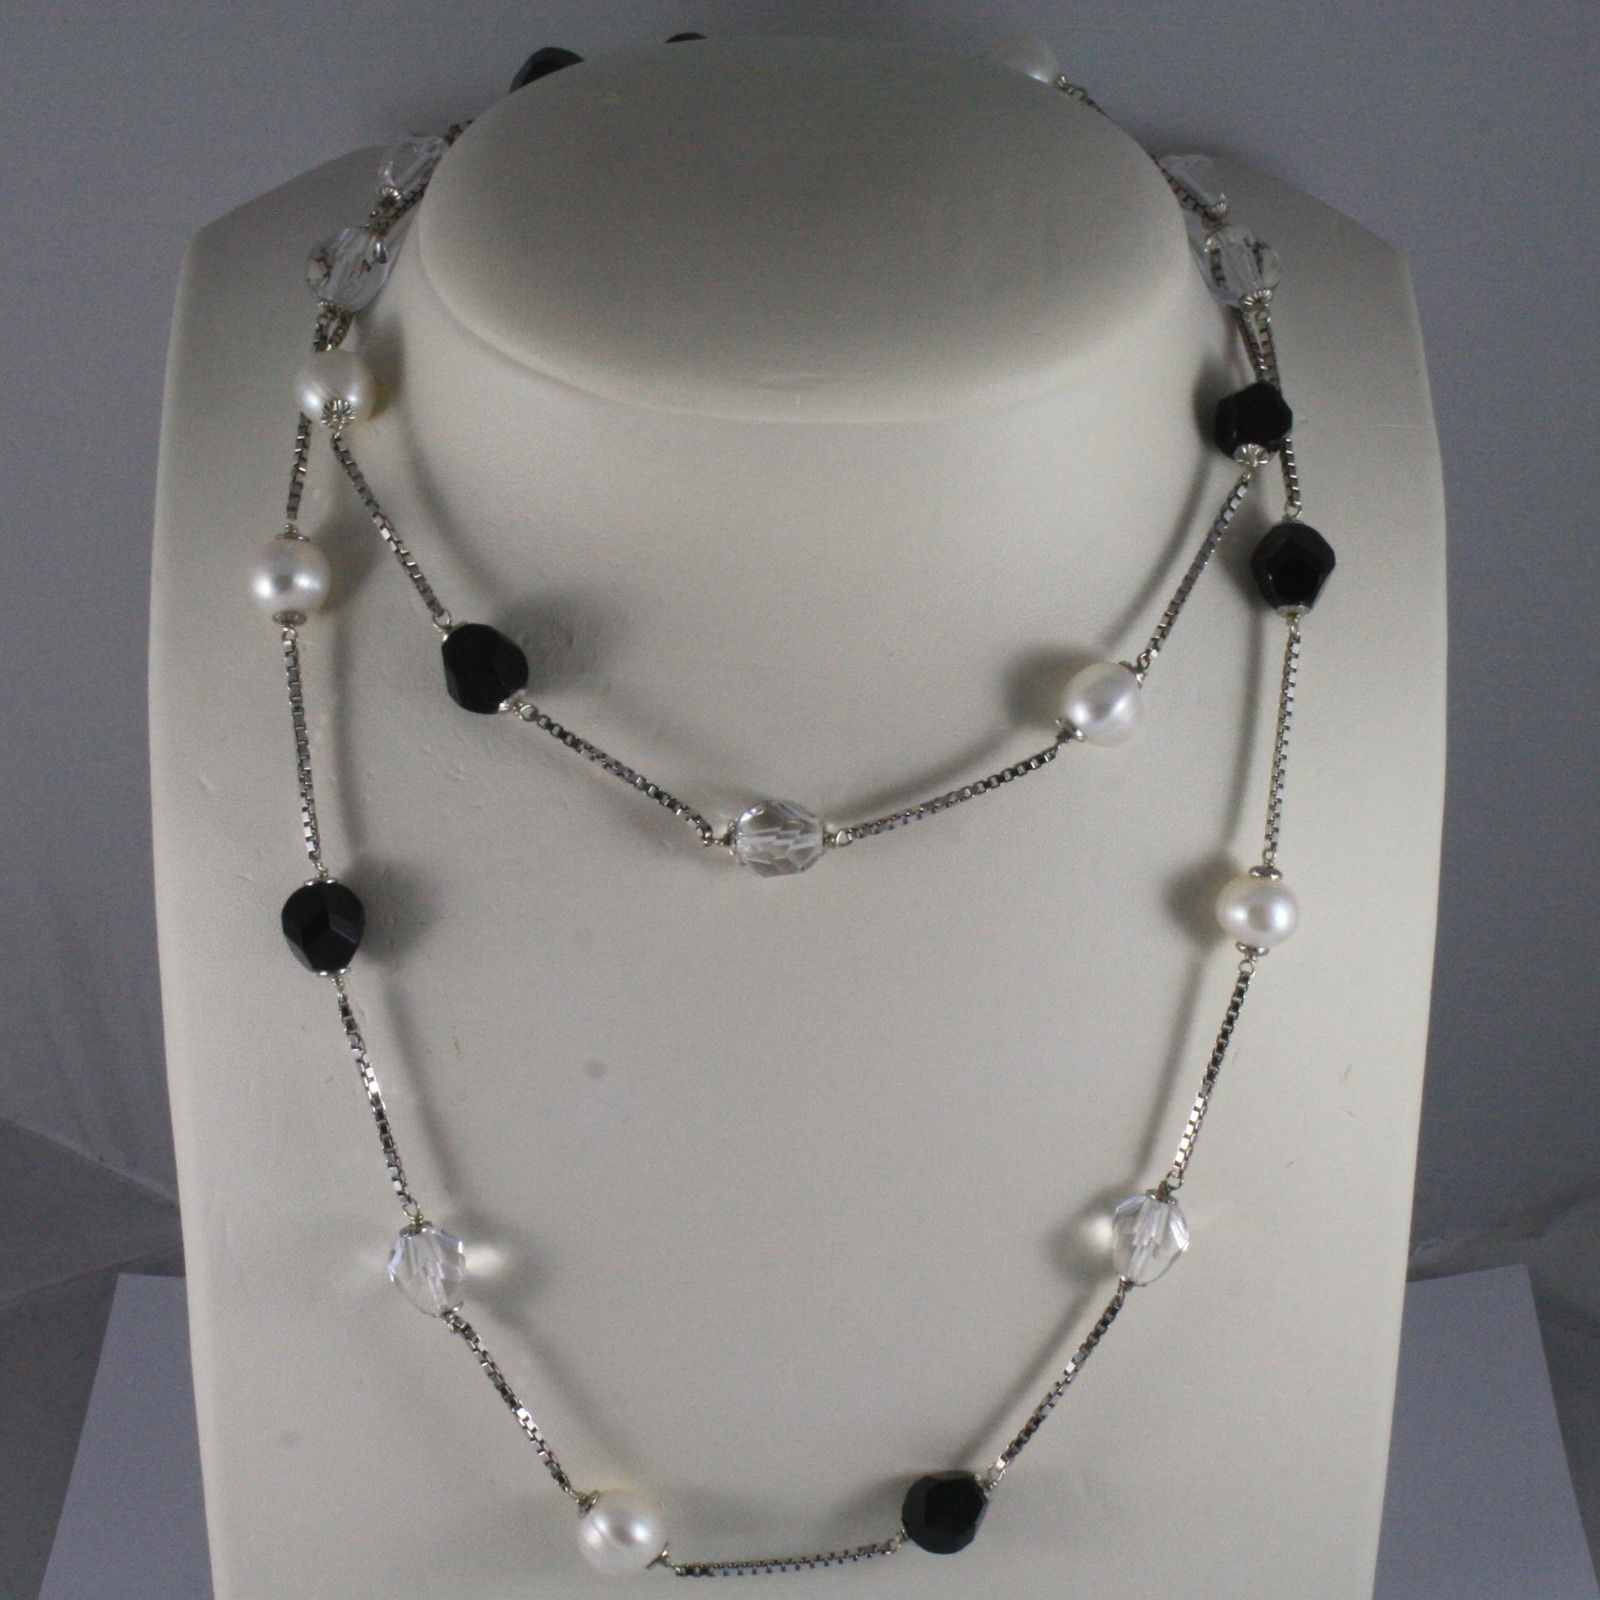 .925 SILVER RHODIUM NECKLACE WITH BLACK ONYX, WHITE PEARLS, TRANSPARENT CRYSTALS